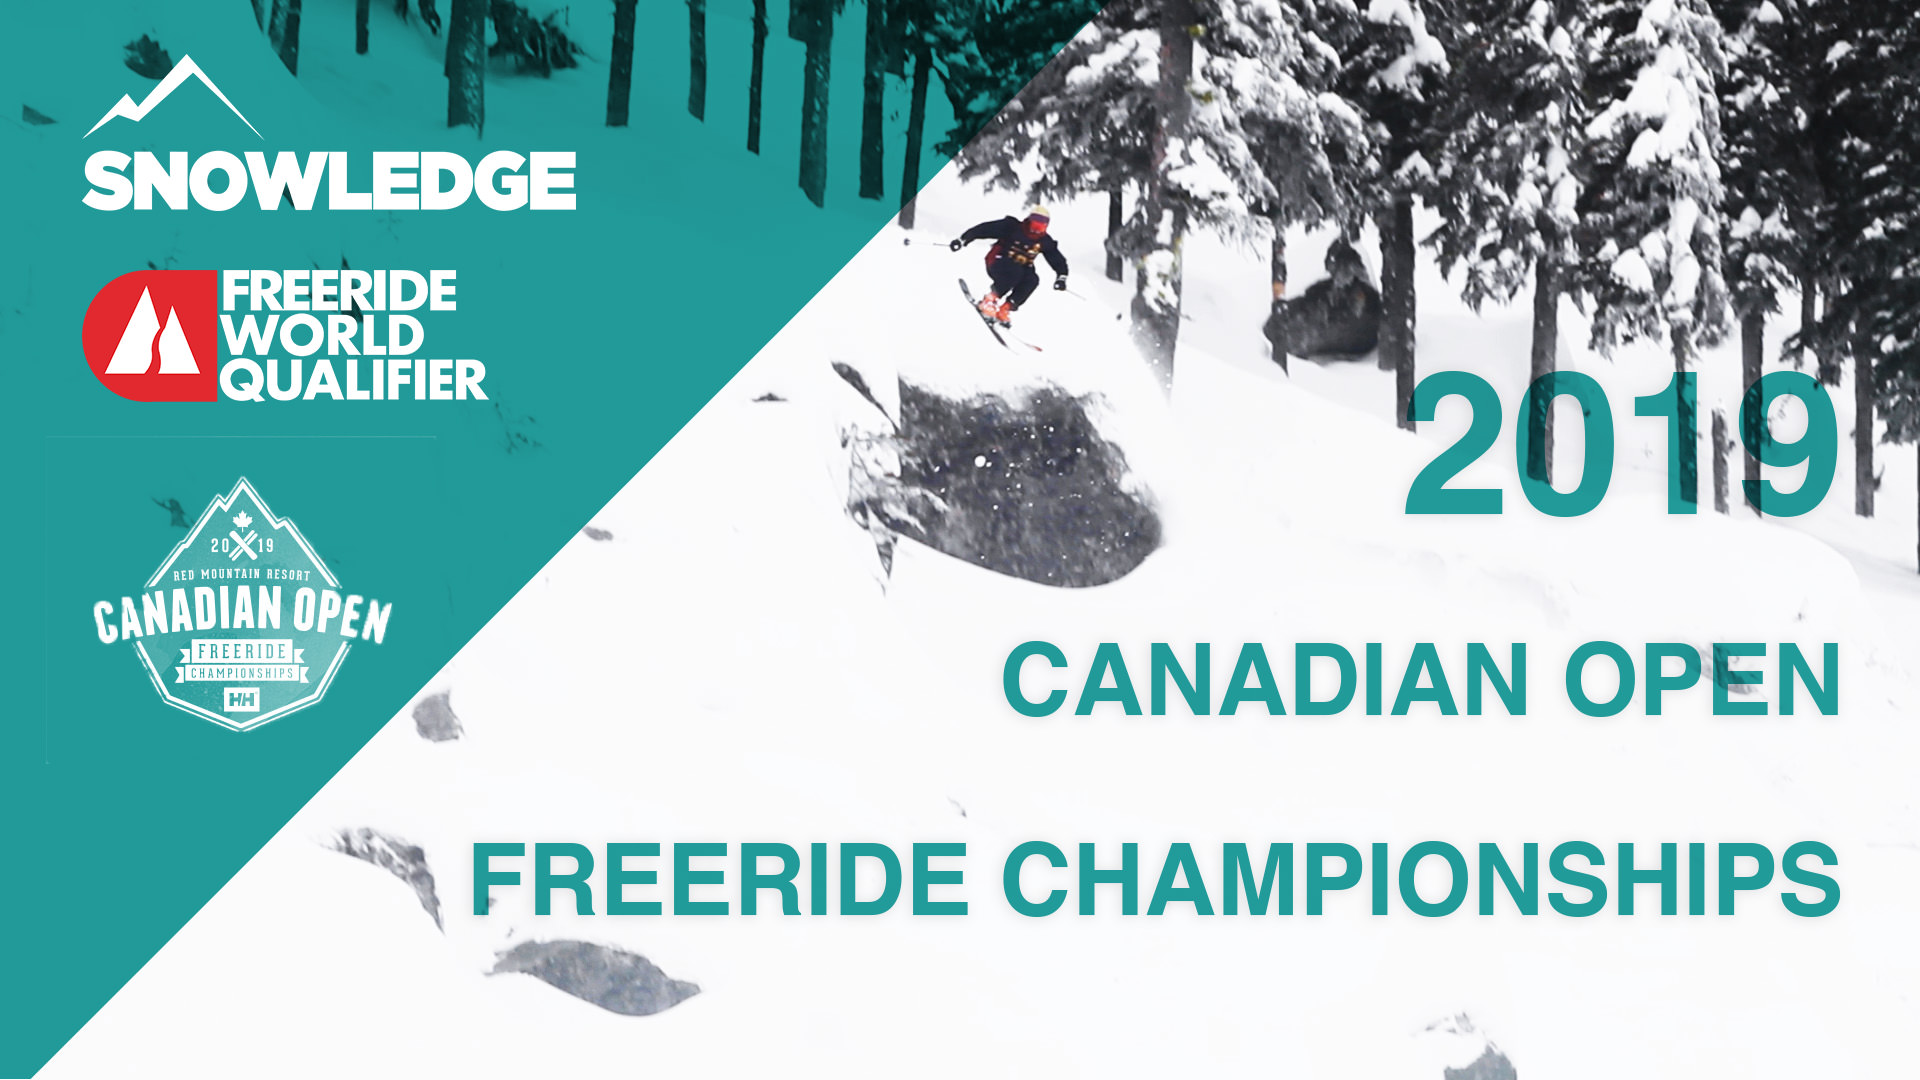 2019 Canadian Open freeride championships red mountain snowledge app video coverage